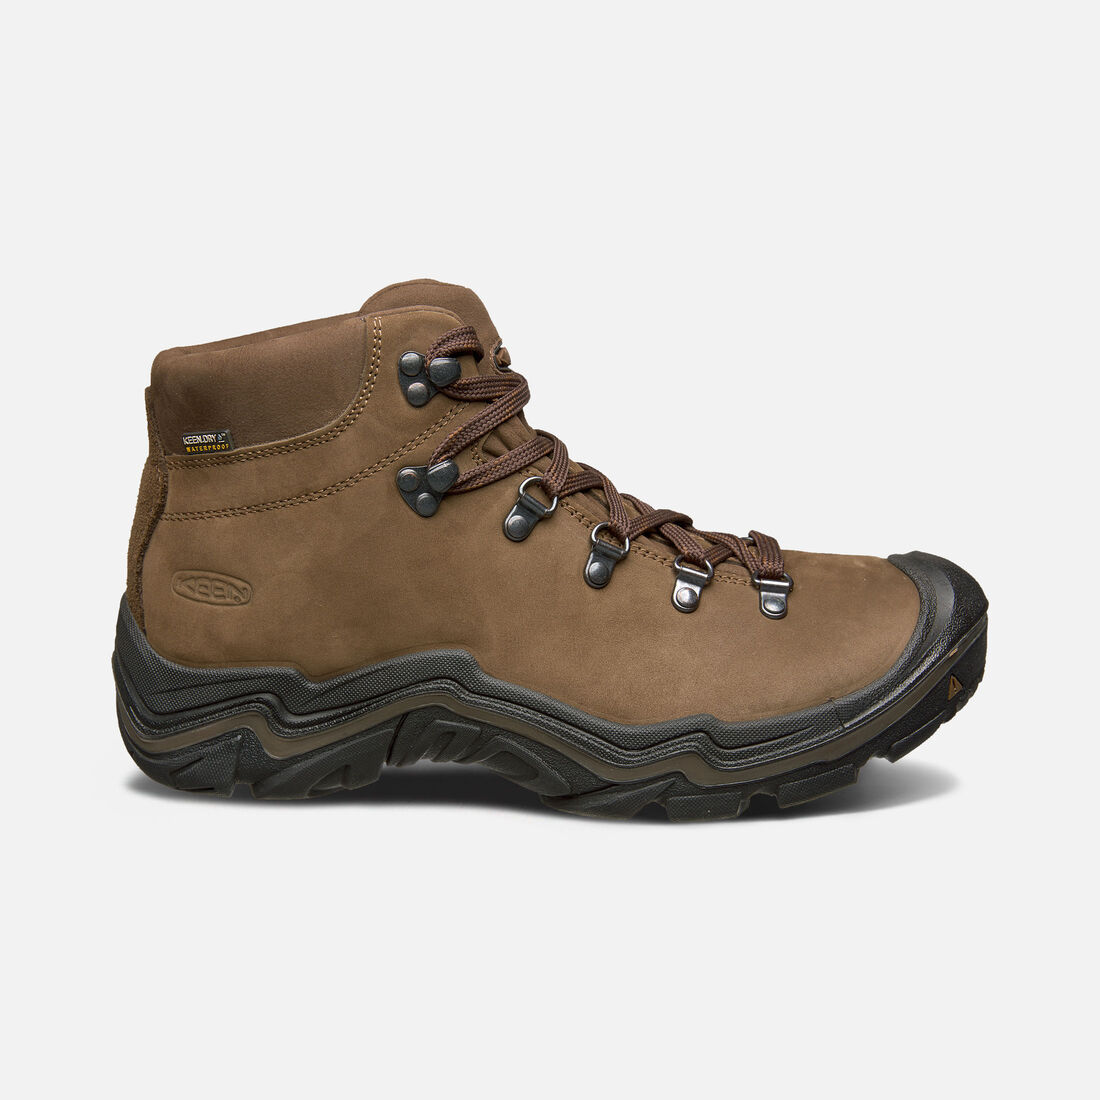 Men's Feldberg Waterproof in Dark Earth/Cascade Brown - large view.